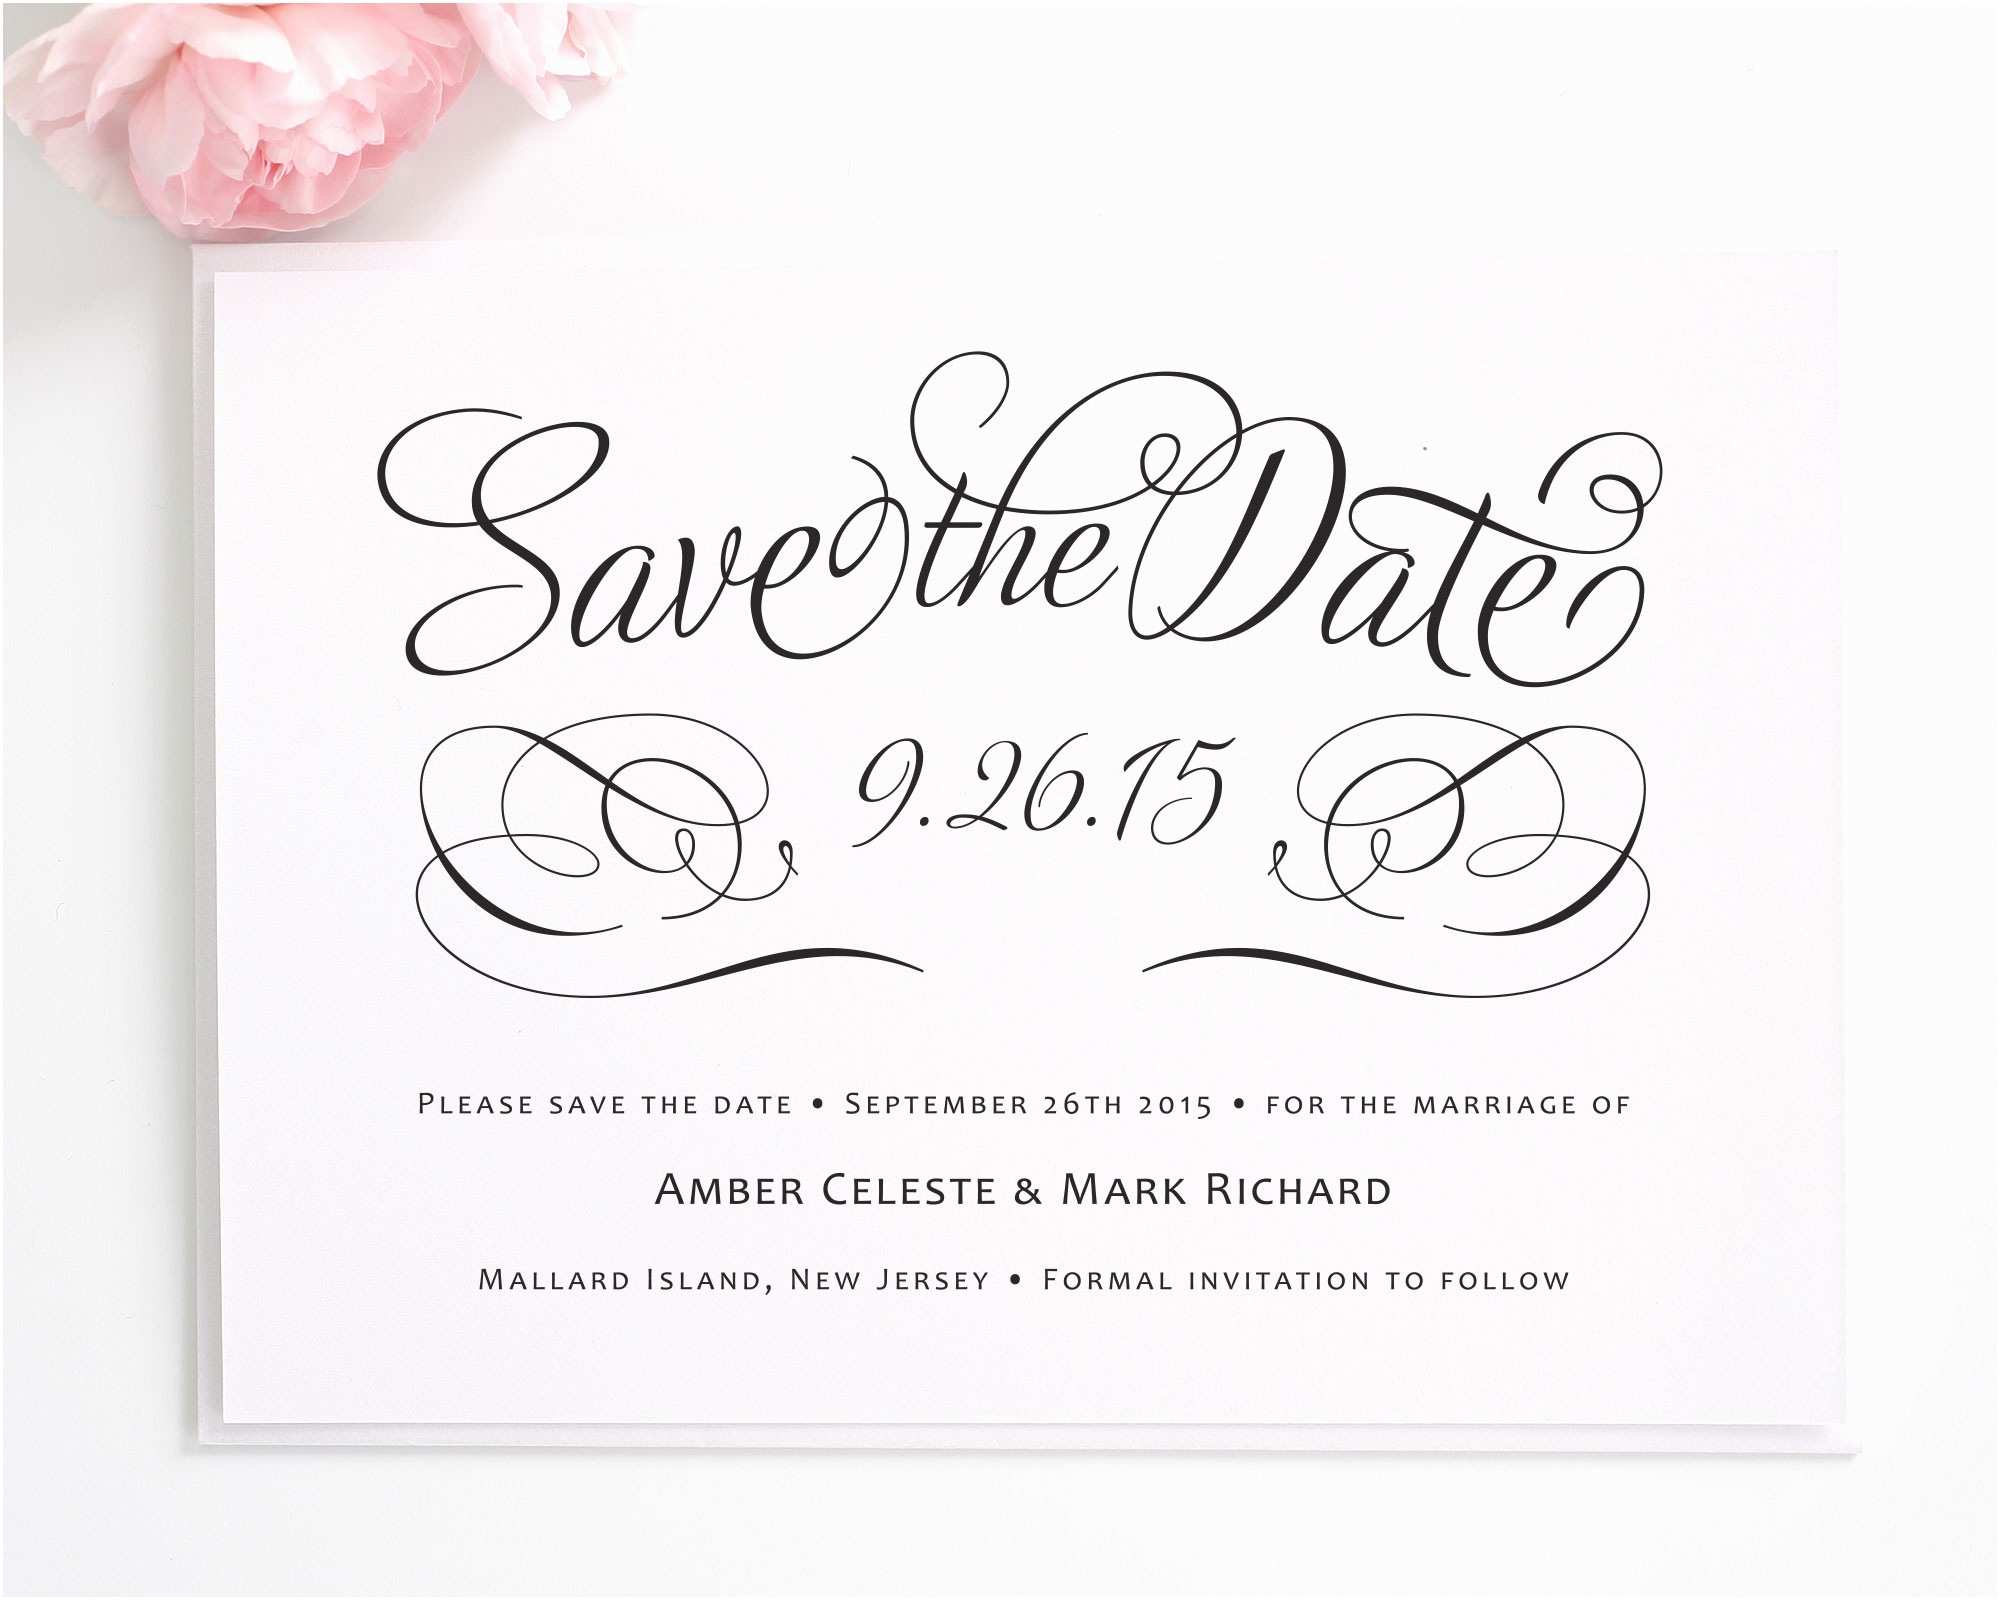 Cheap Wedding Invitations and Save the Dates Packages Charming Script Save the Date Cards Best Template